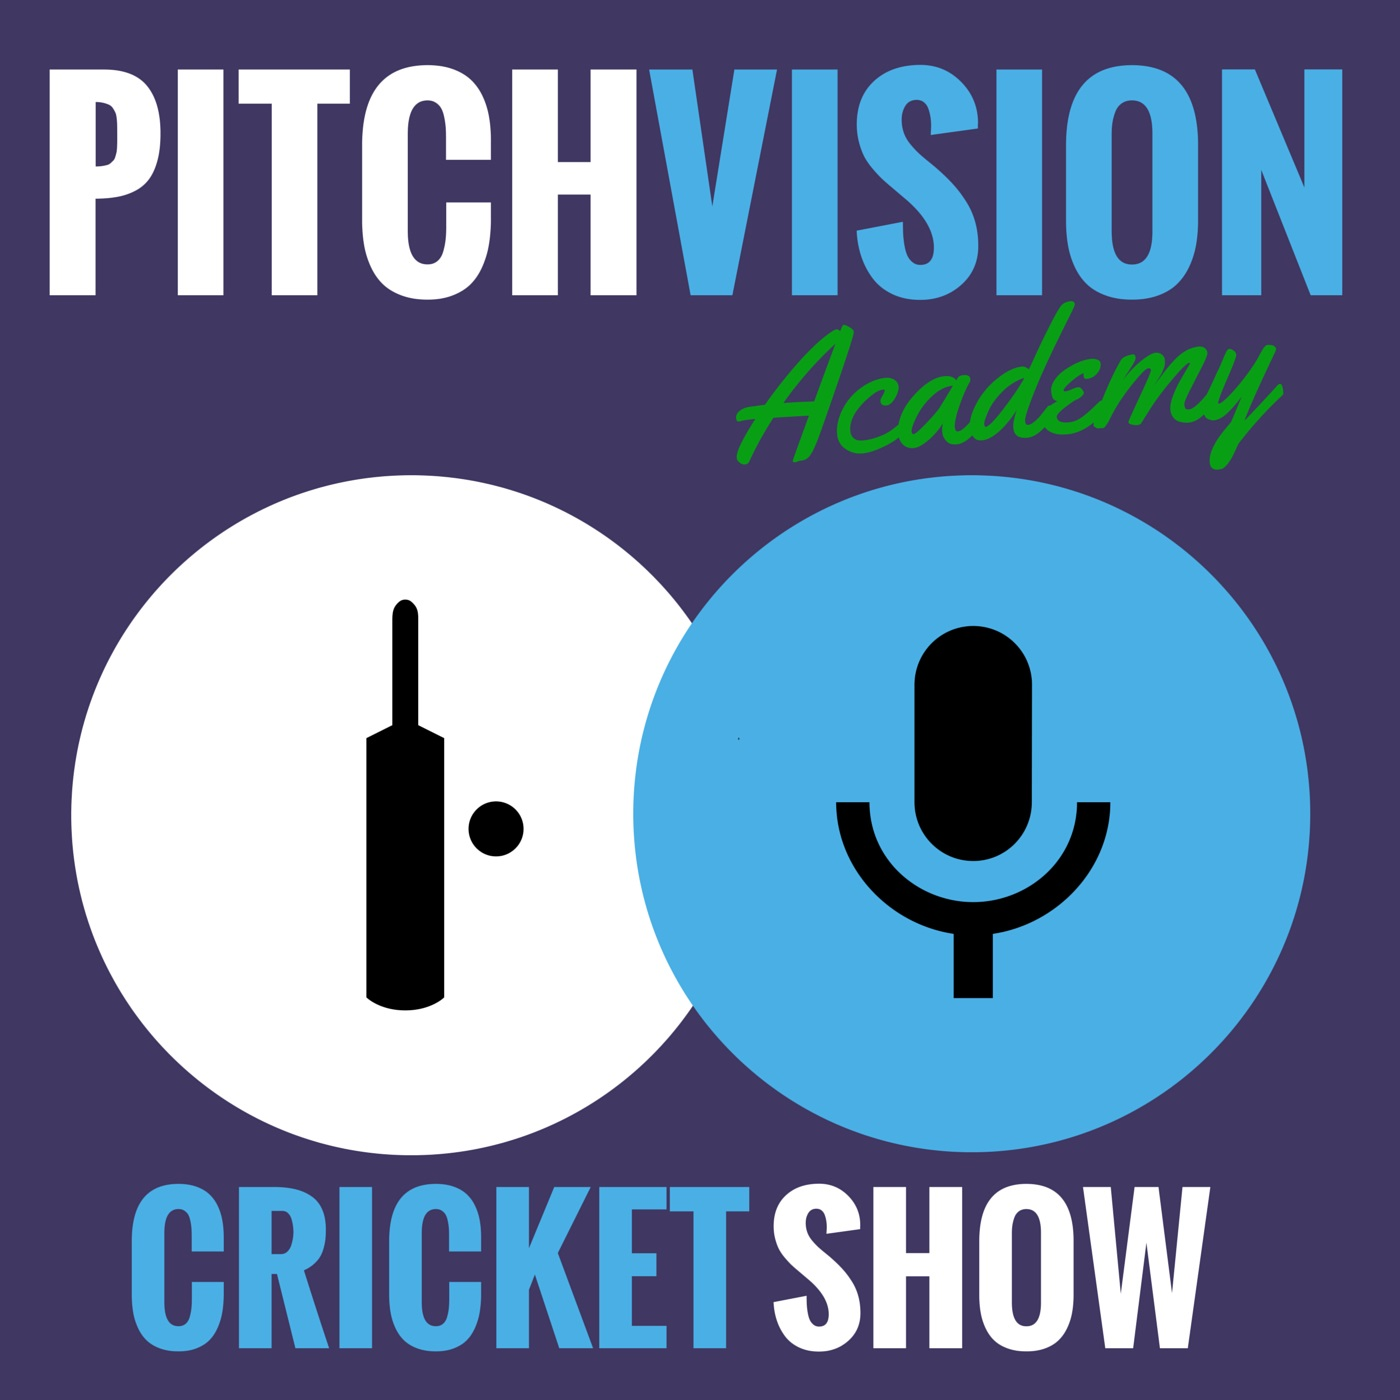 PitchVision Academy Cricket Show